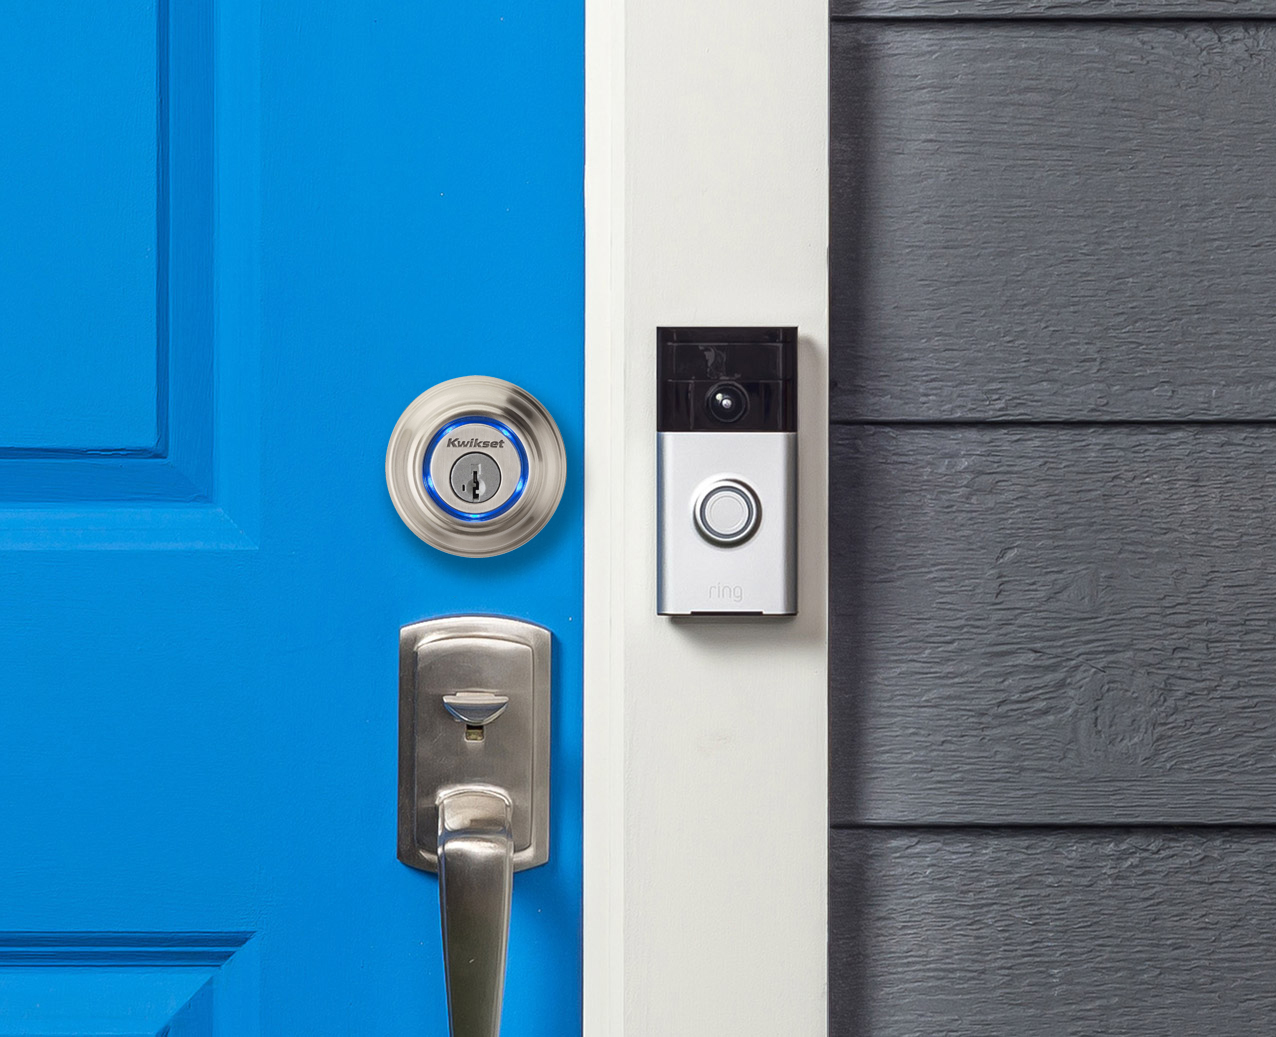 Kwikset Kevo Smart Lock Now Works With Ring Video Doorbell - Kwikset Locks Smart Security Blog : kwikset door - pezcame.com